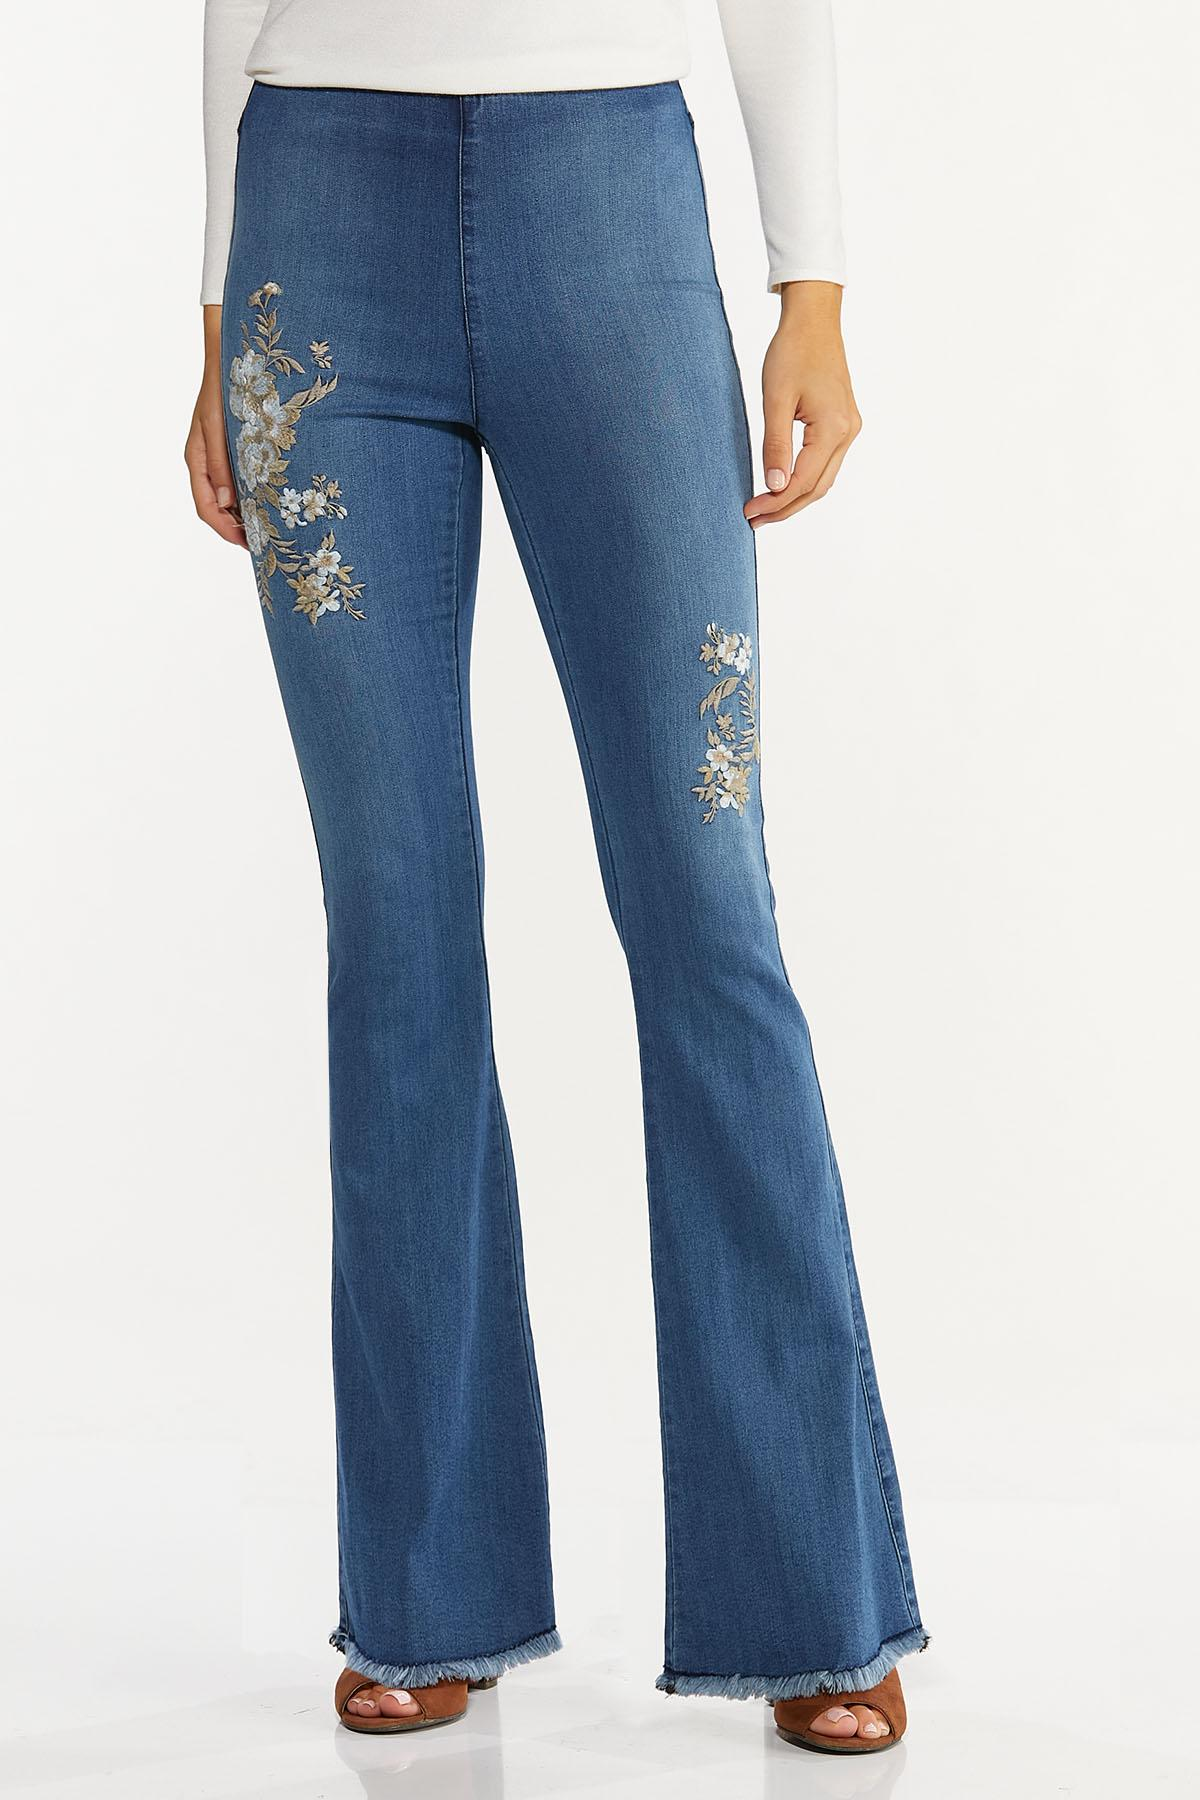 Petite Floral Embroidered Flare Jeans